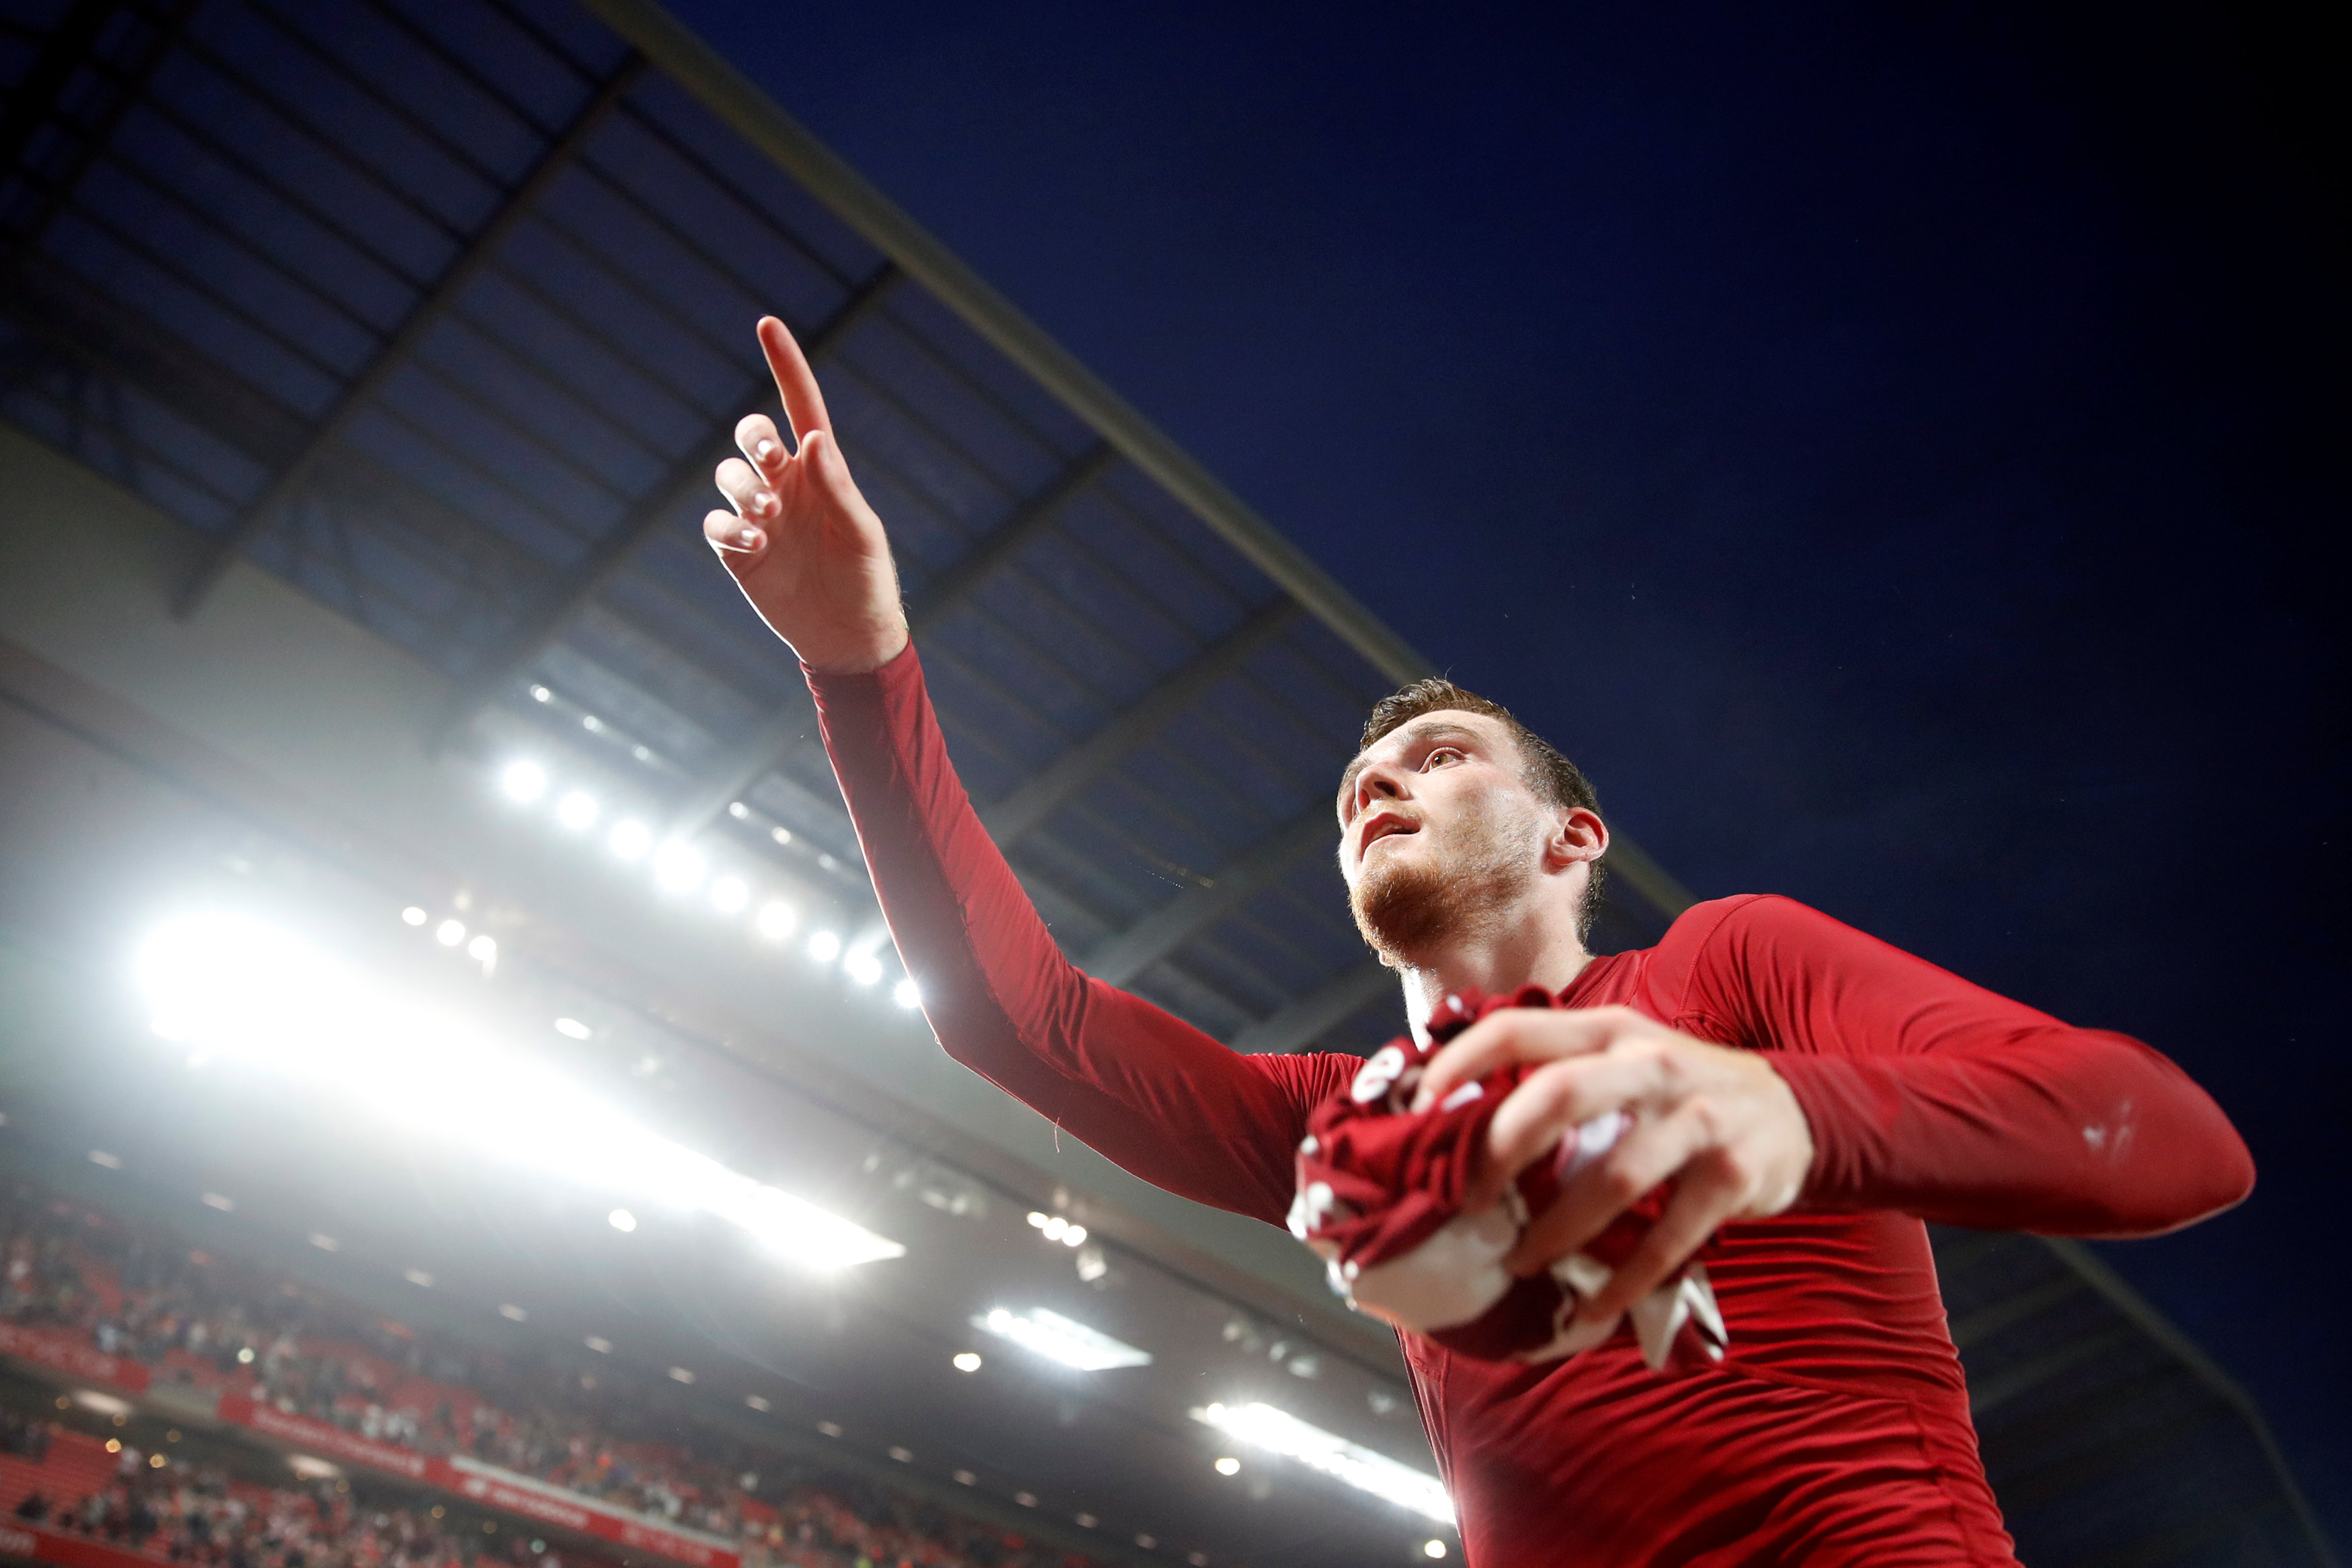 → Andrew Robertson's total of 213 points last season was the most ever recorded by an FPL defender. John Terry and which other player (who scored 196 points in 2007/08) previously co-held that record?